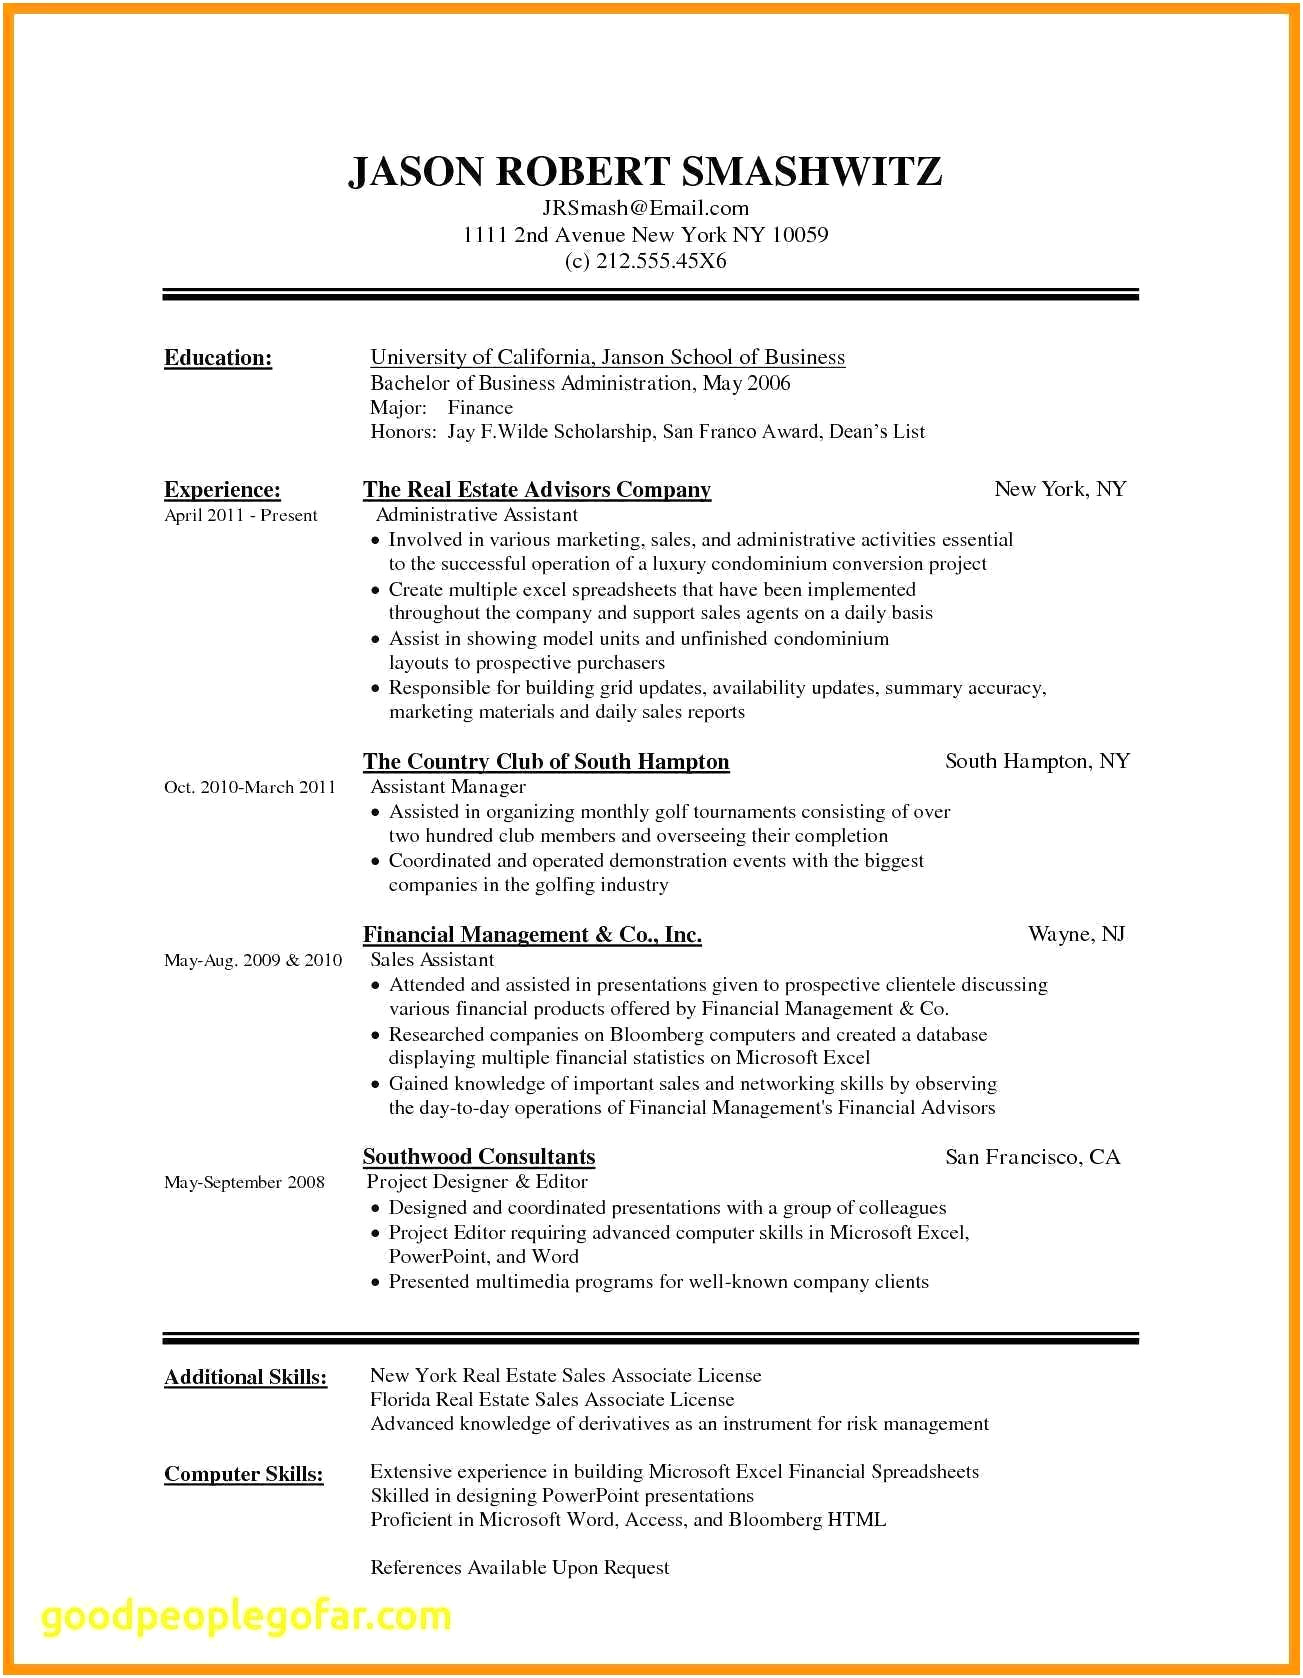 Design A Resume Online - 49 Awesome Resume Line Template